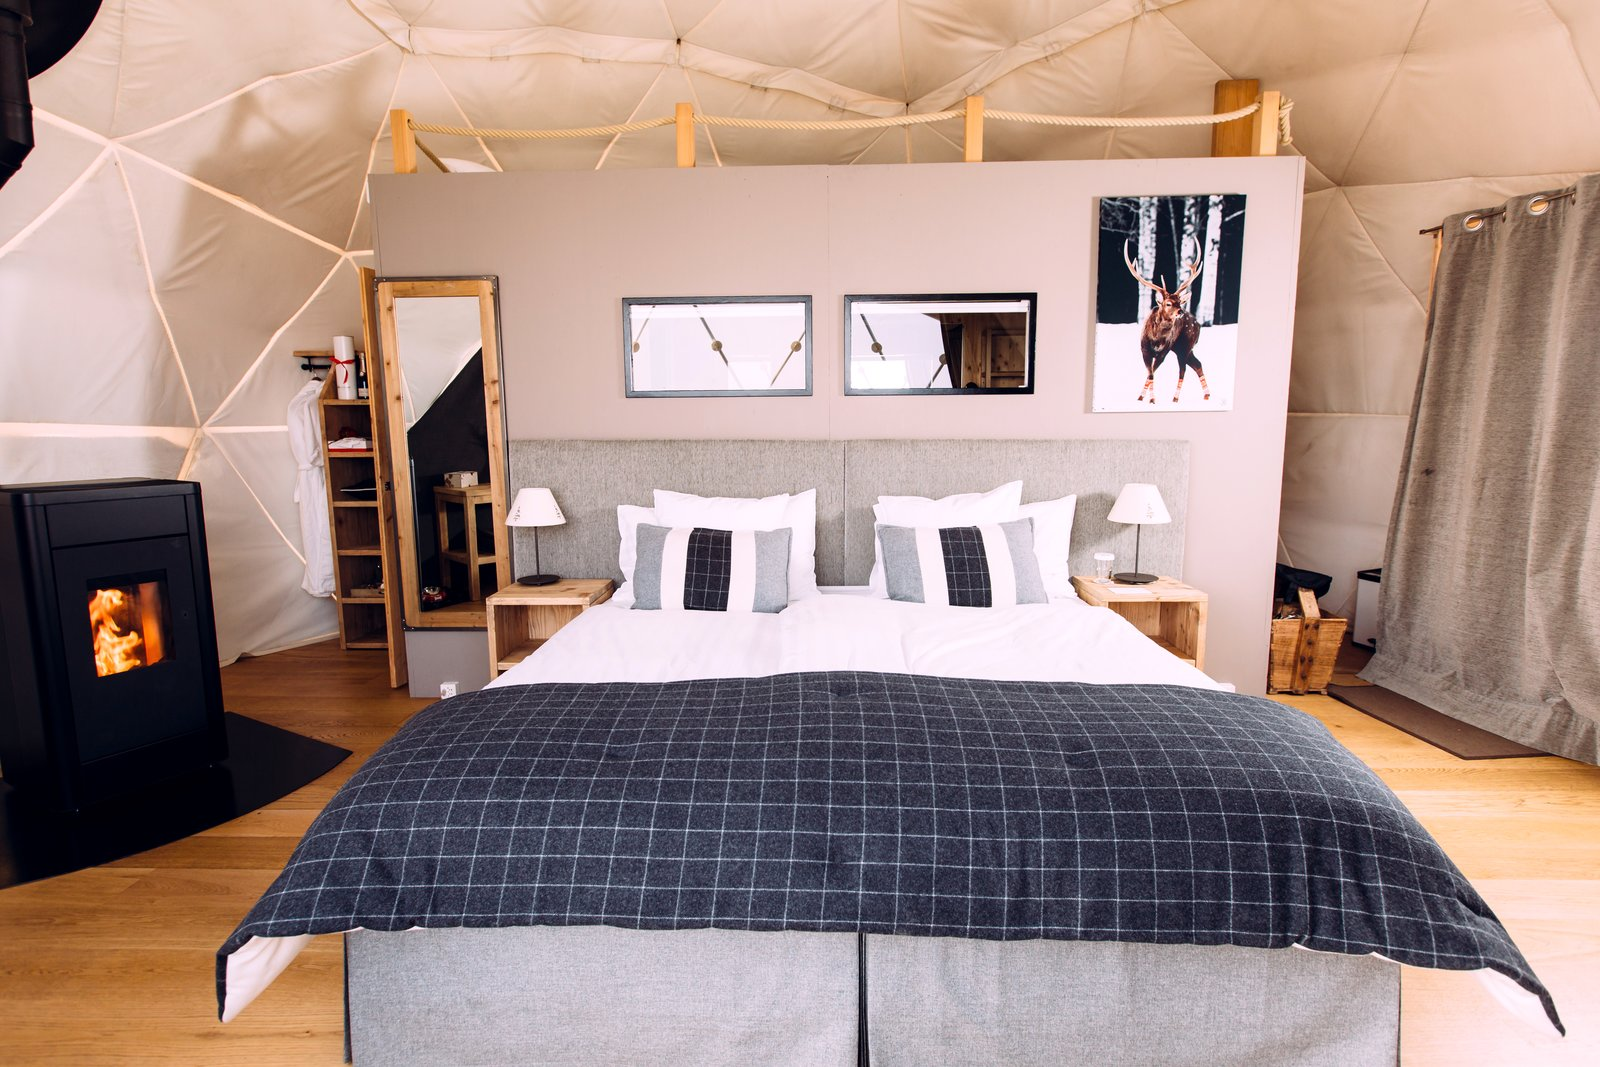 Bedroom, Medium Hardwood Floor, Bed, Night Stands, and Table Lighting Whitepod currently offers 15 pods in 3 different configurations.  Best Photos from Go Eco-Friendly Glamping in These Geodesic Domes in the Swiss Alps